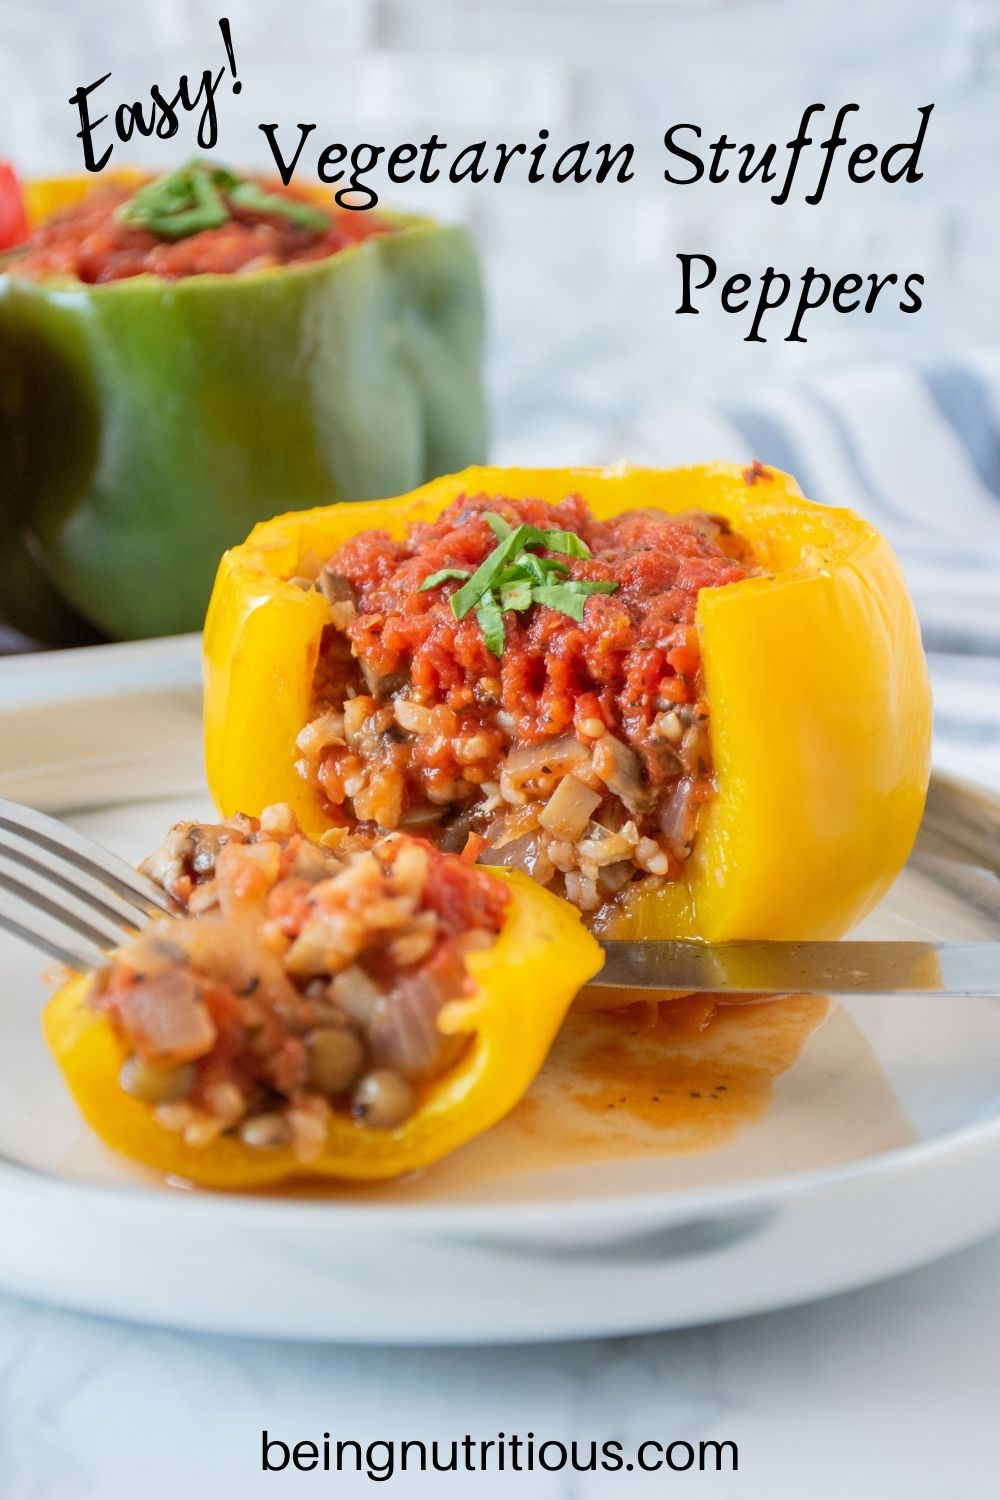 A yellow stuffed pepper, side cut open to reveal stuffing, on a plate. Text overlay: Easy! Vegetarian Stuffed peppers.